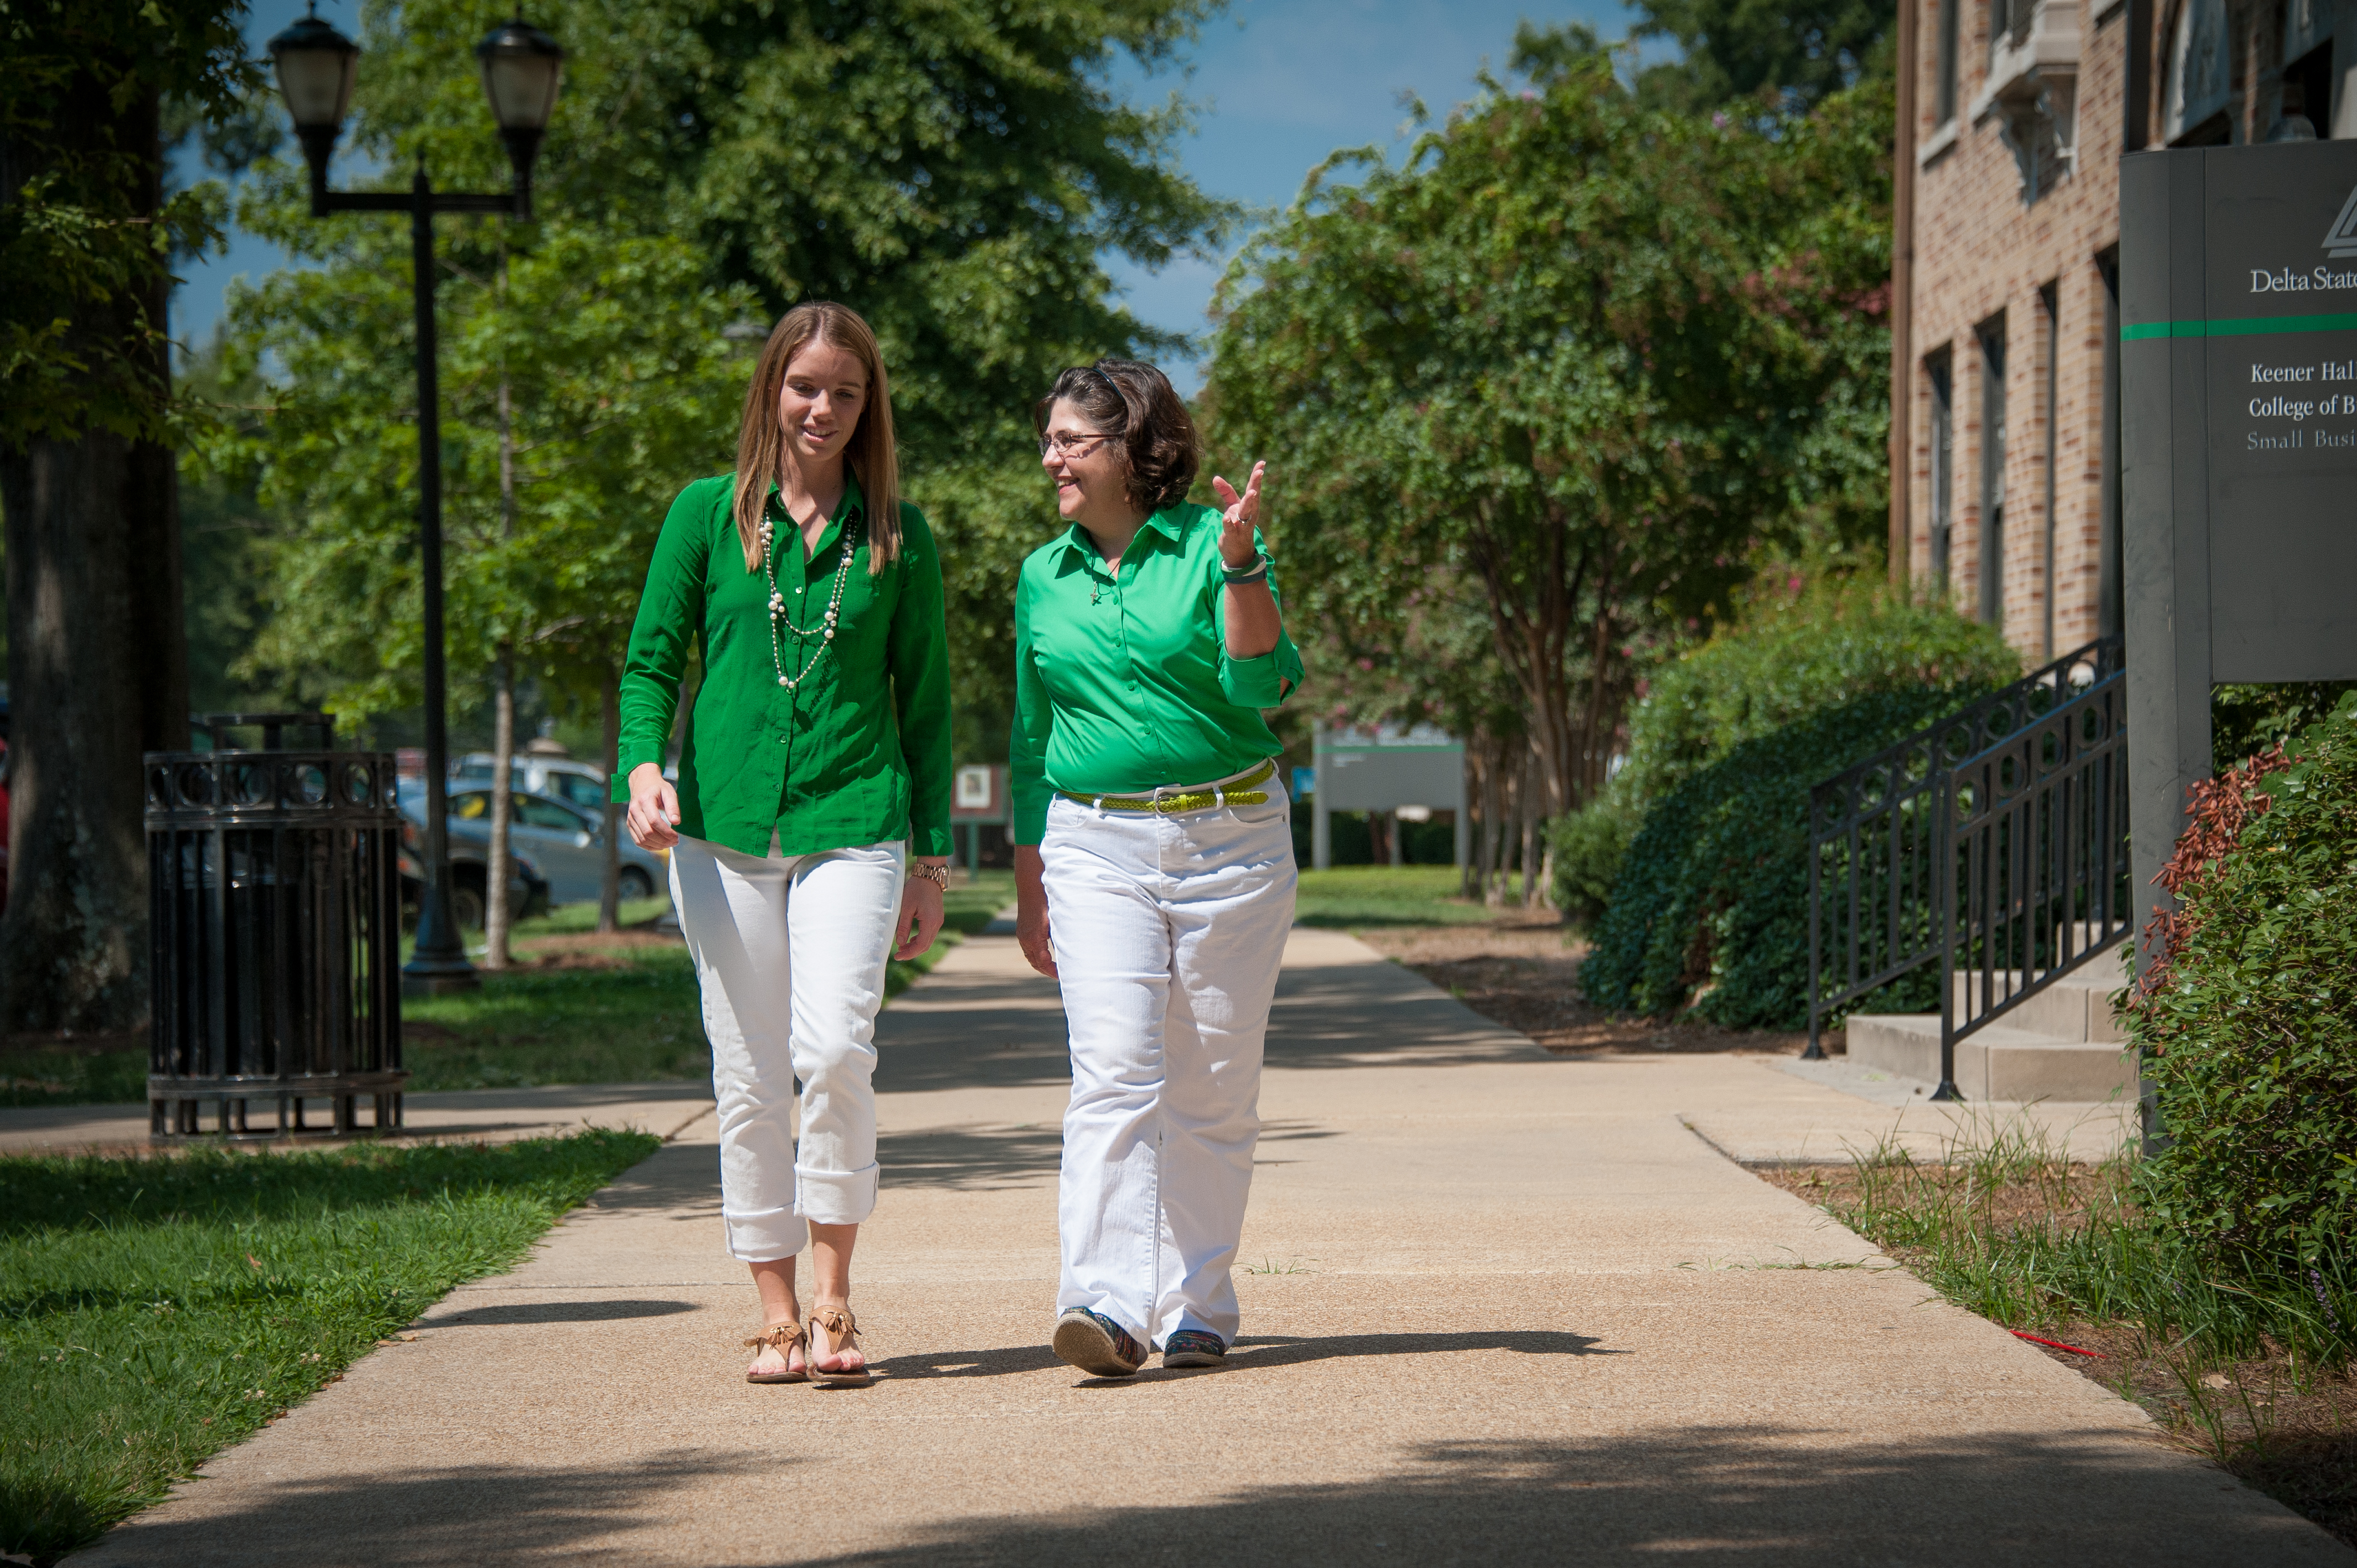 Senior Student Government Association President Sydney Hodnett and Anne Weissinger '81, president of the Delta State University Foundation Board, are both from Rolling Fork and play leading roles at Delta State.